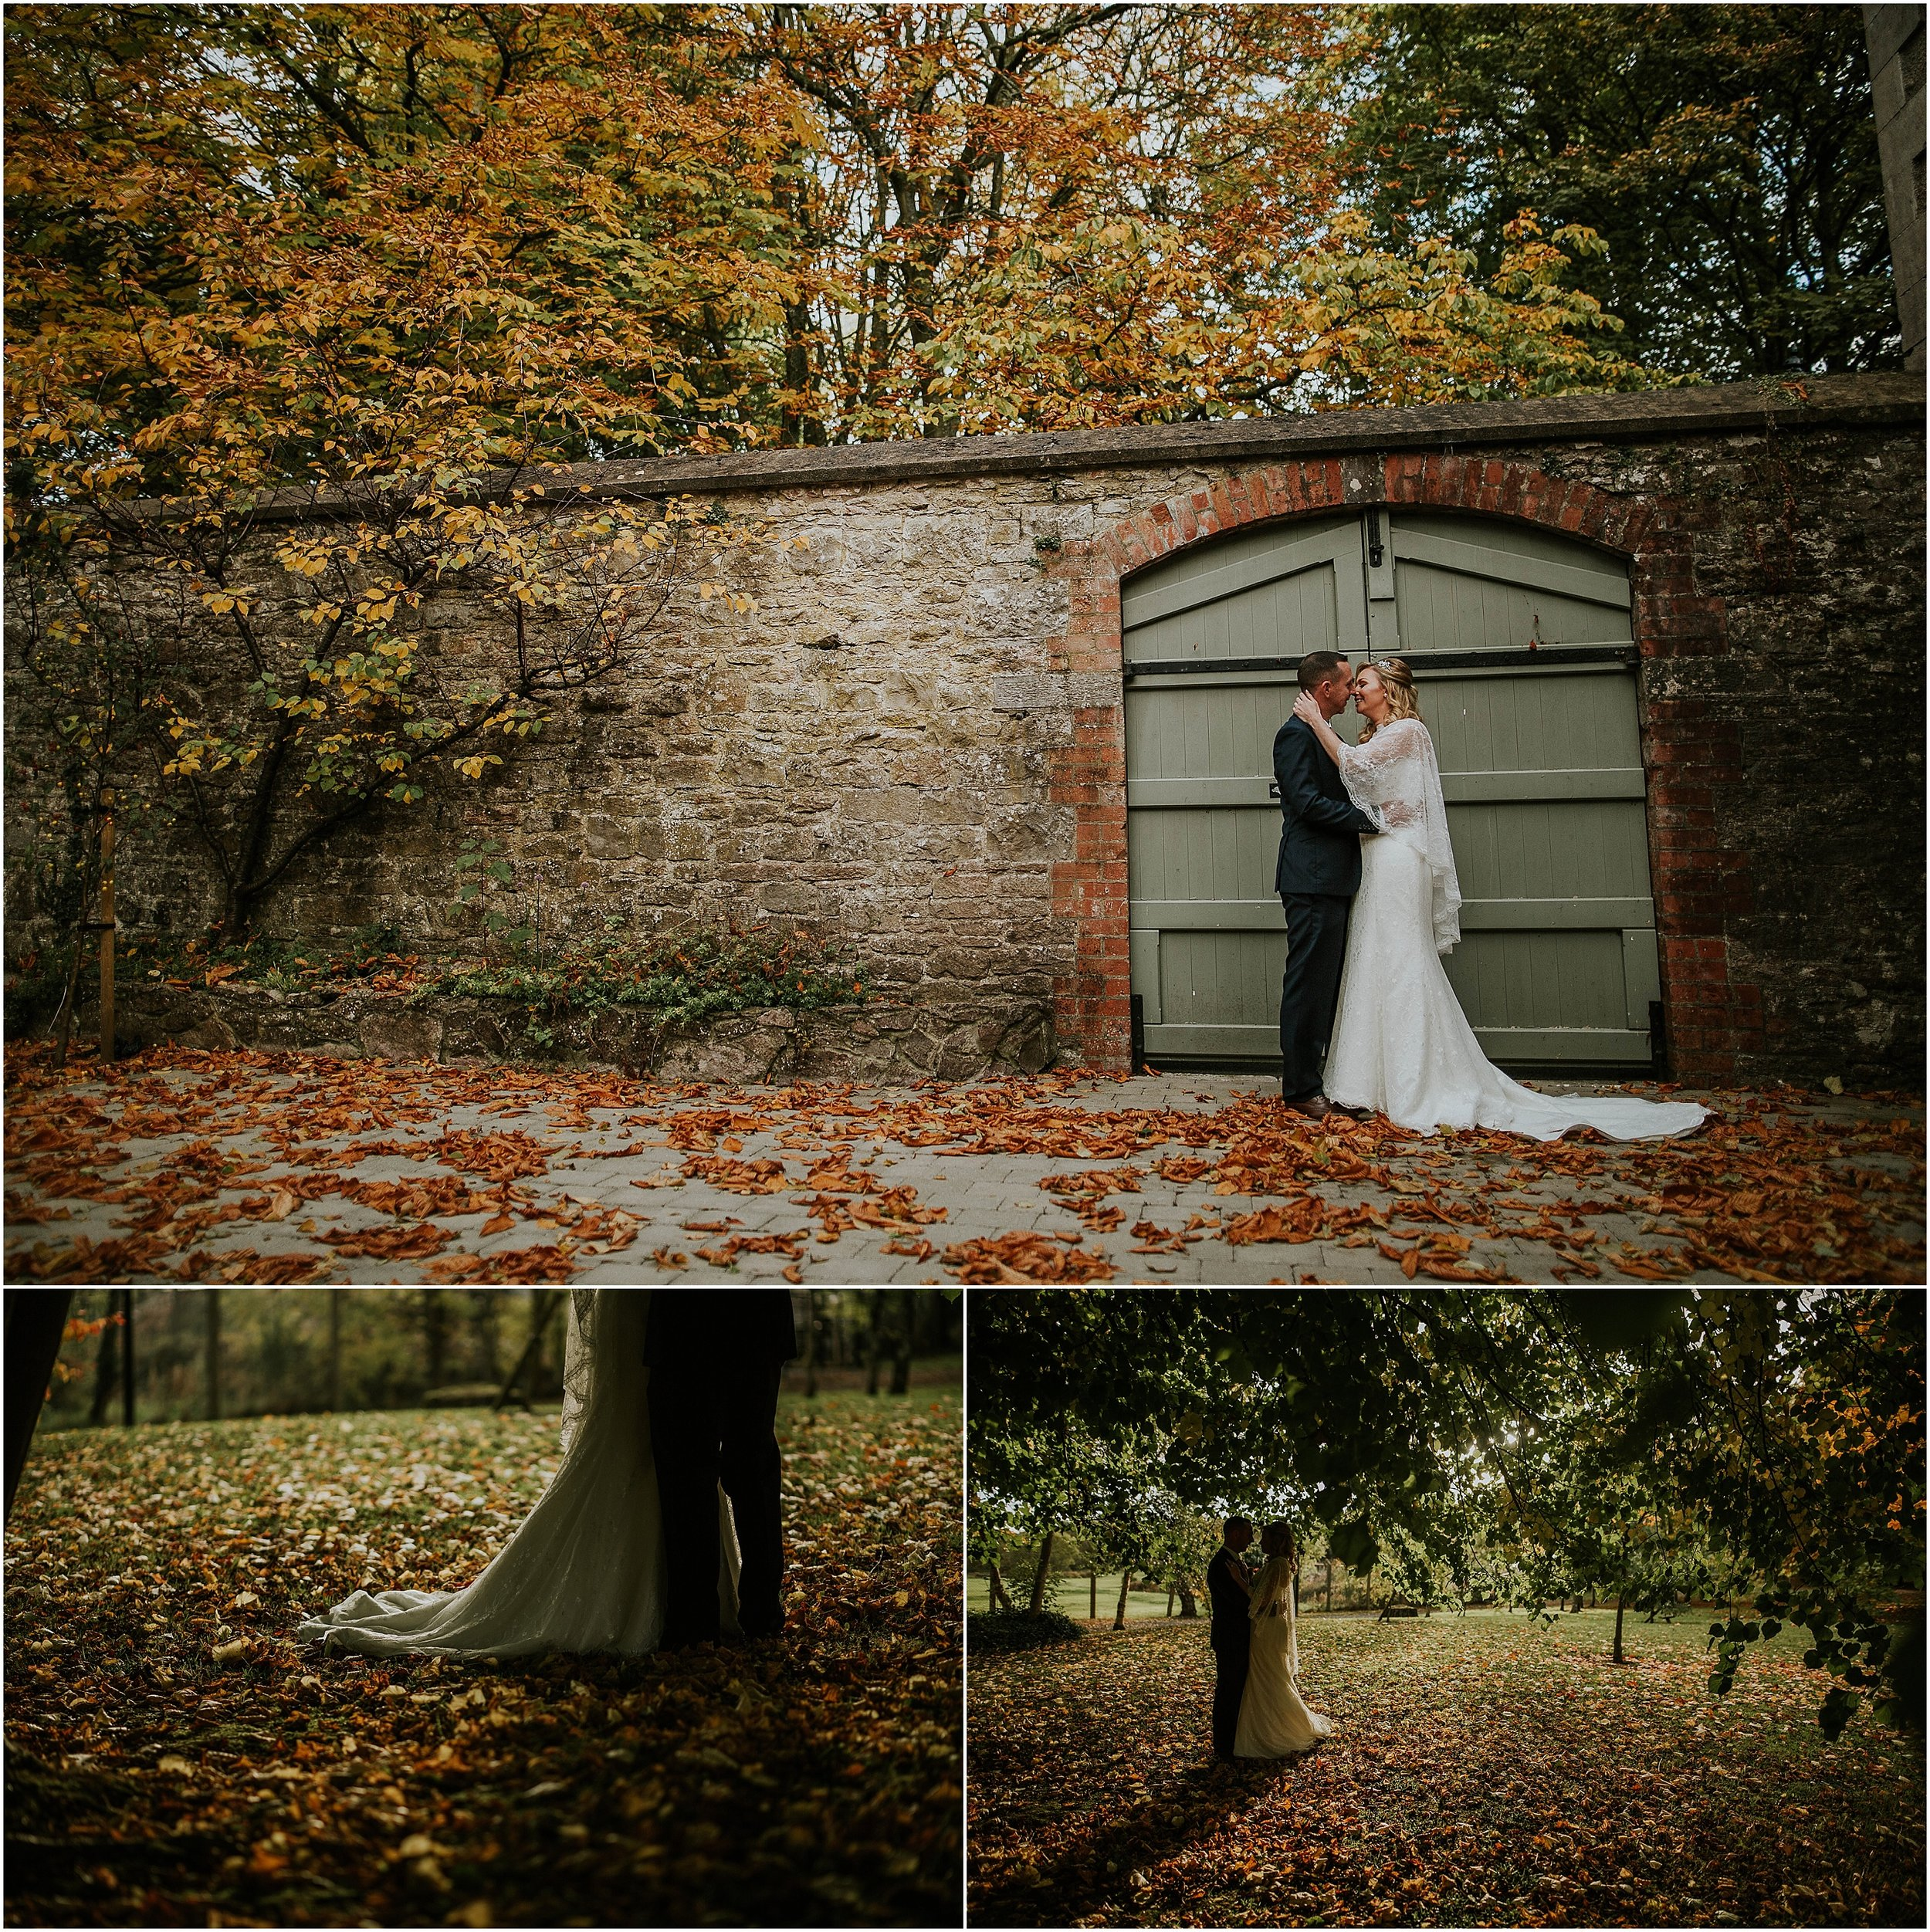 Northern Ireland Wedding Photographer Moody Boar Palace Stables Autumn Natural_0014.jpg